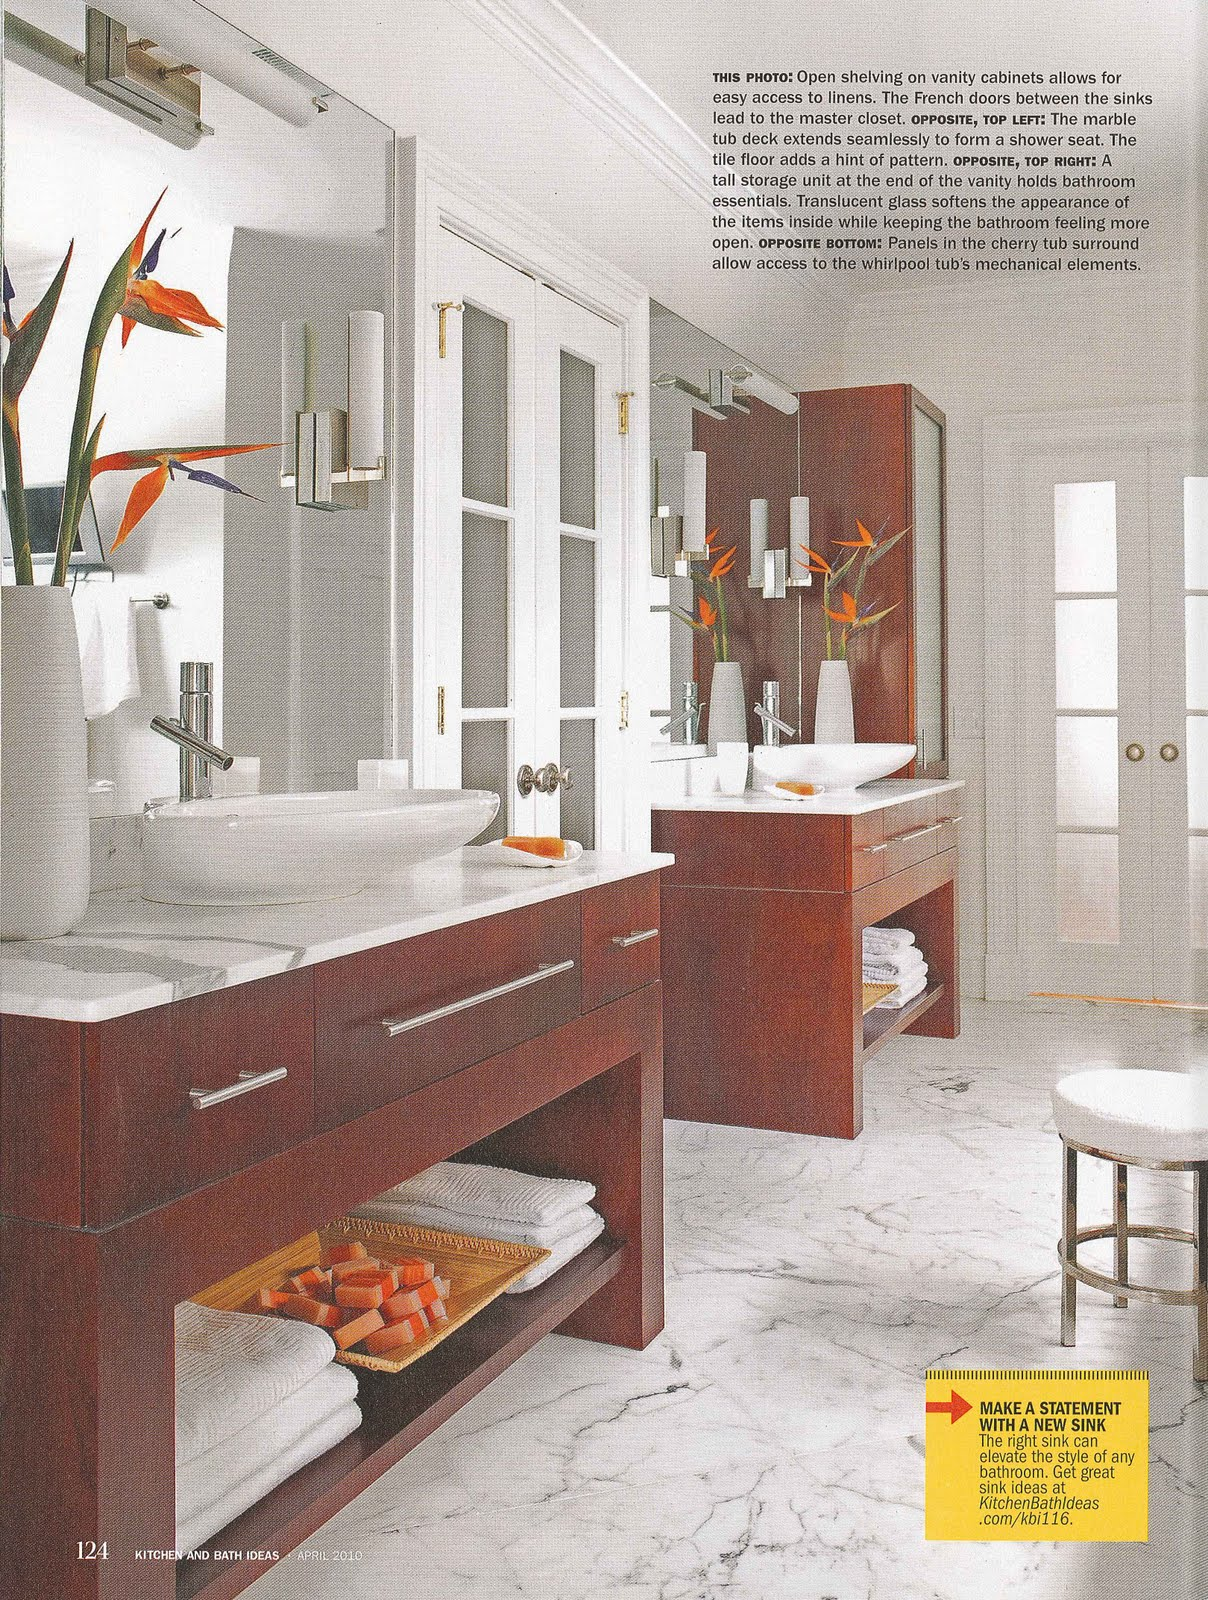 Bob s Blog Better Homes and Gardens Kitchen and Bath Ideas